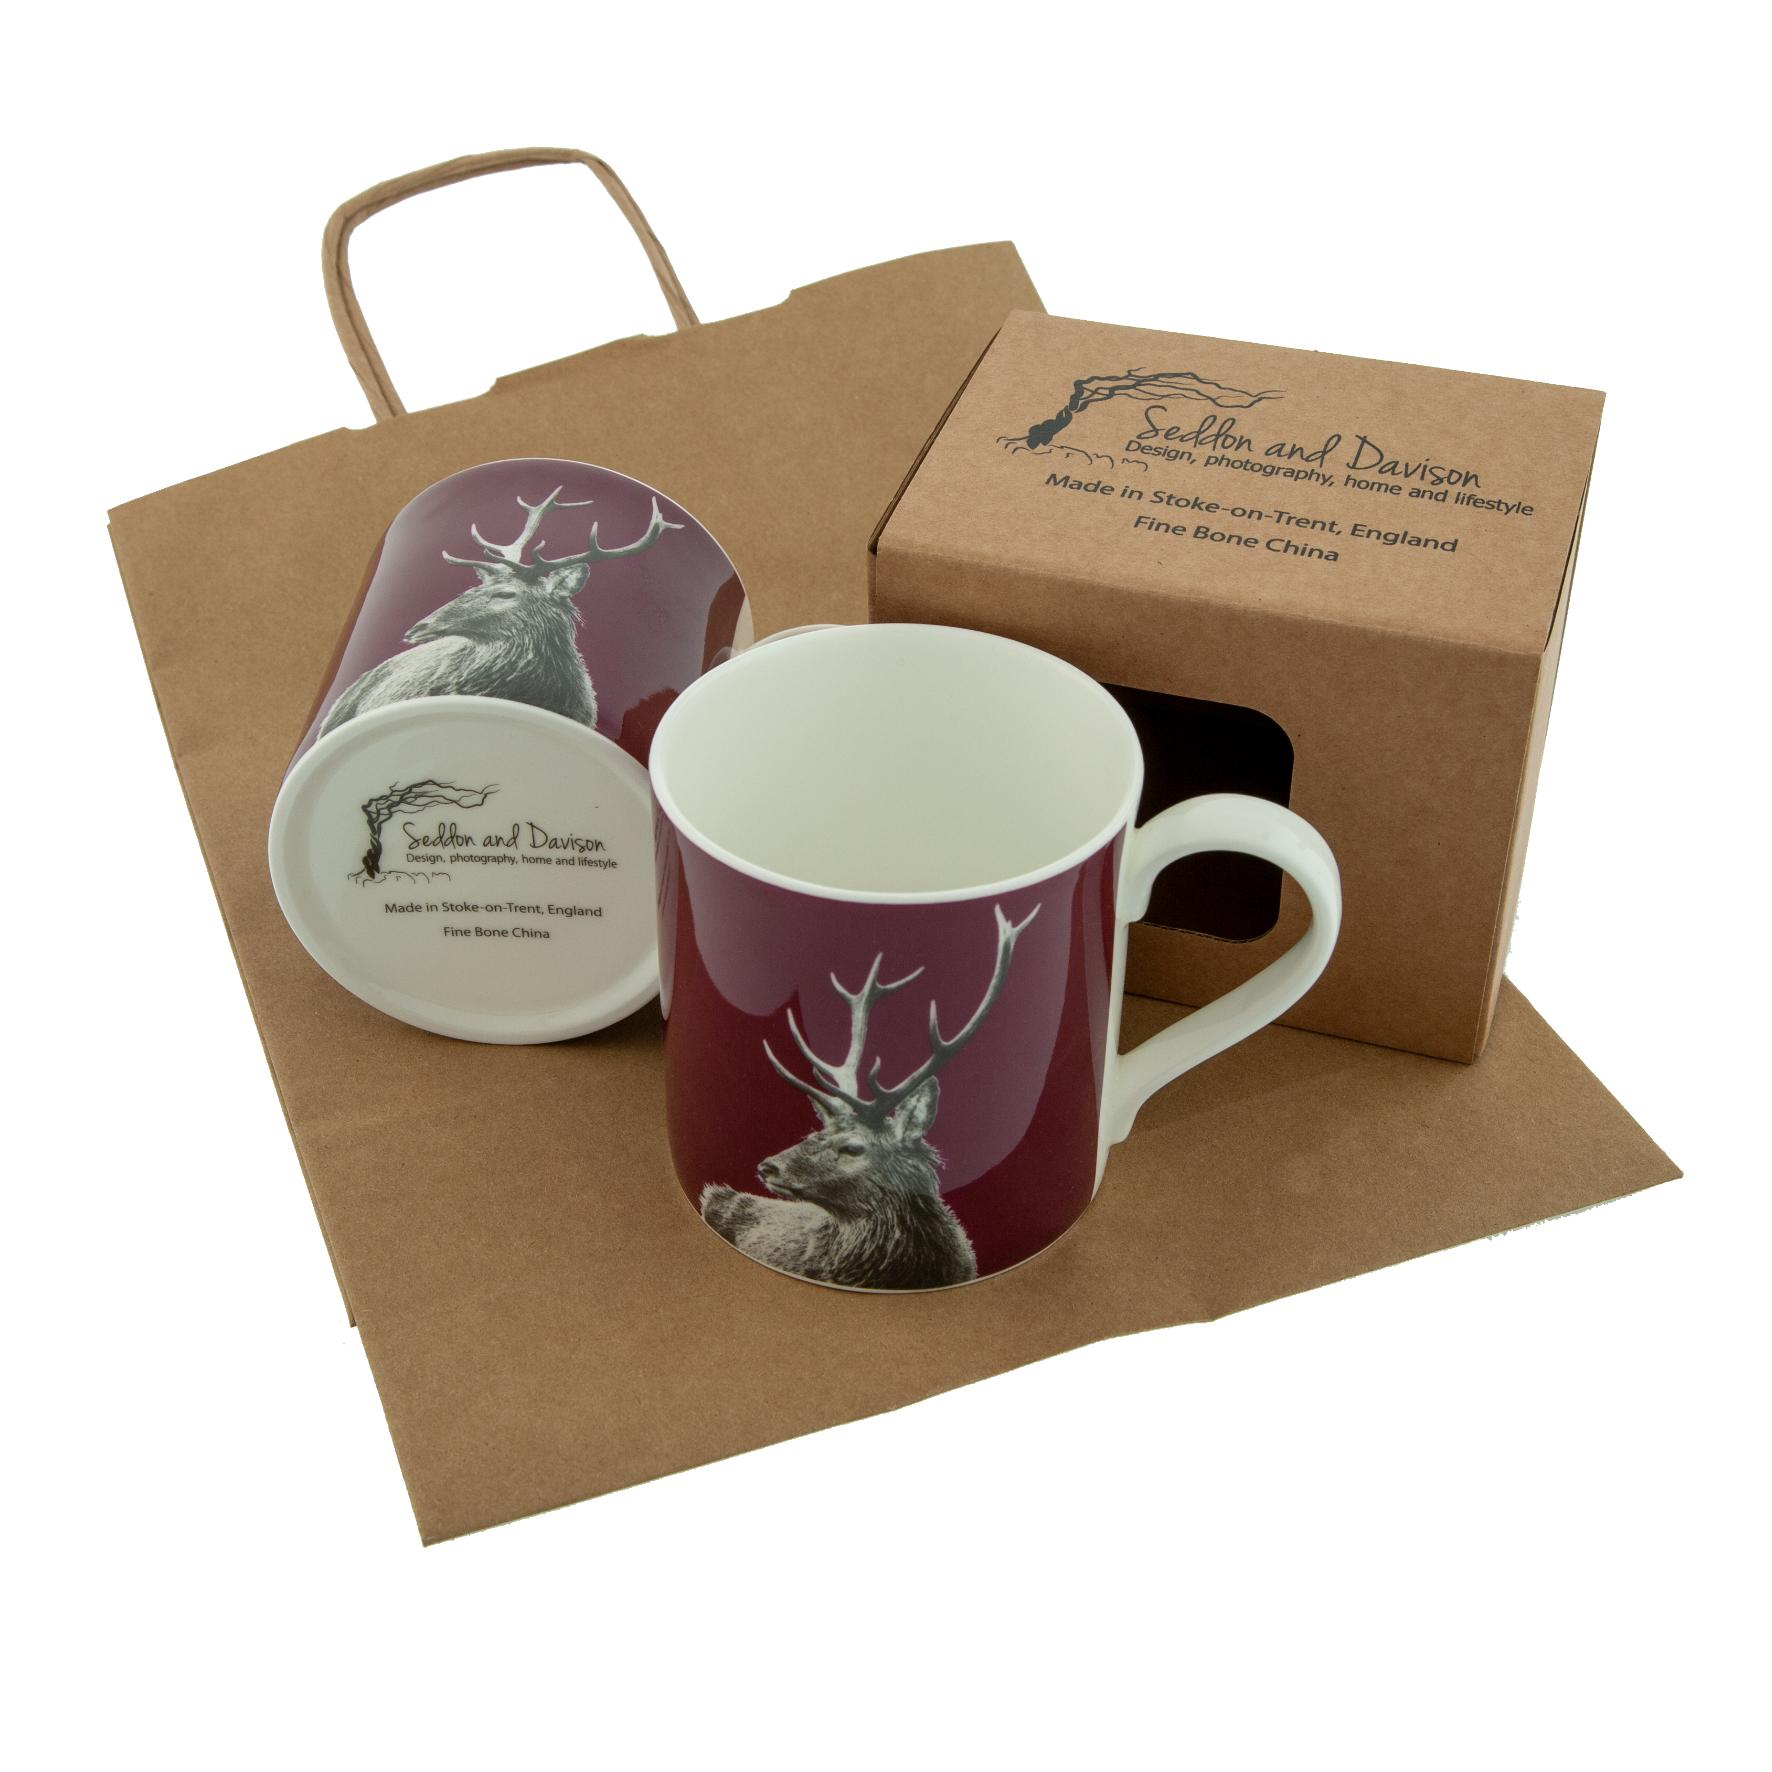 Highland Stag Fine Bone China Mug on Claret